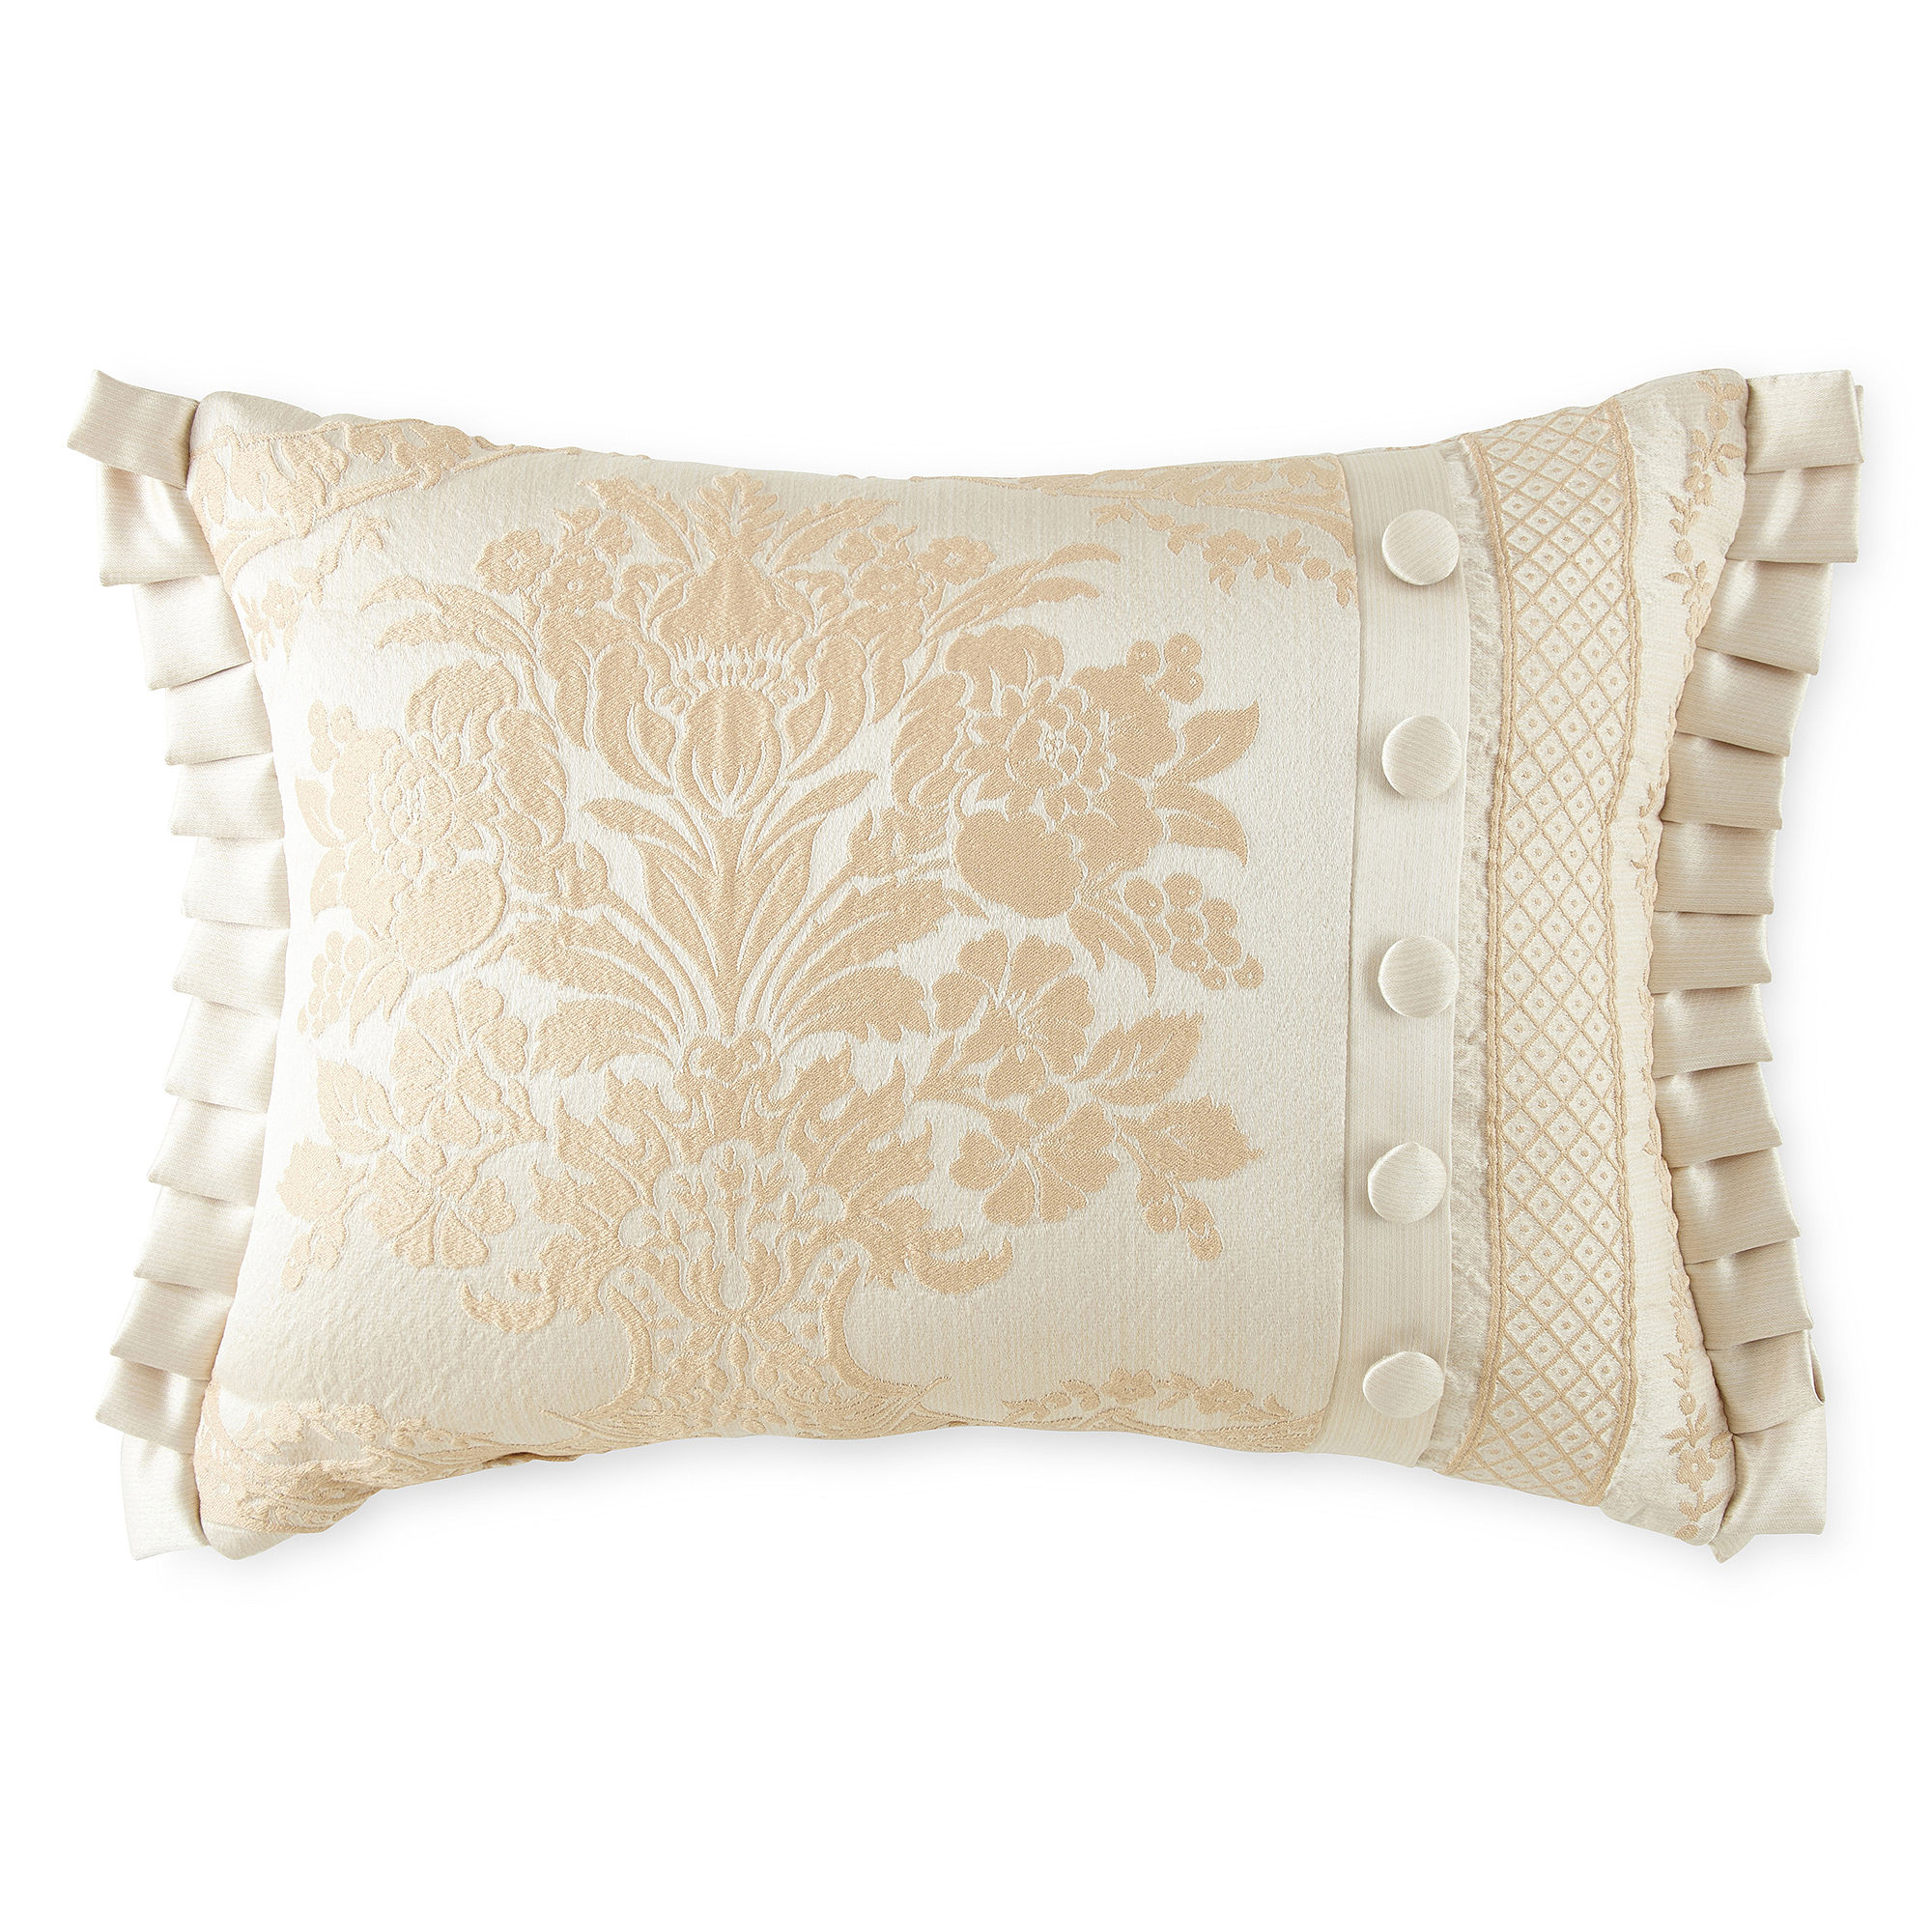 Queen Street Decorative Pillows : QUEEN STREET Bianca Oblong Decorative Pillow, Pearl, Girls on PopScreen